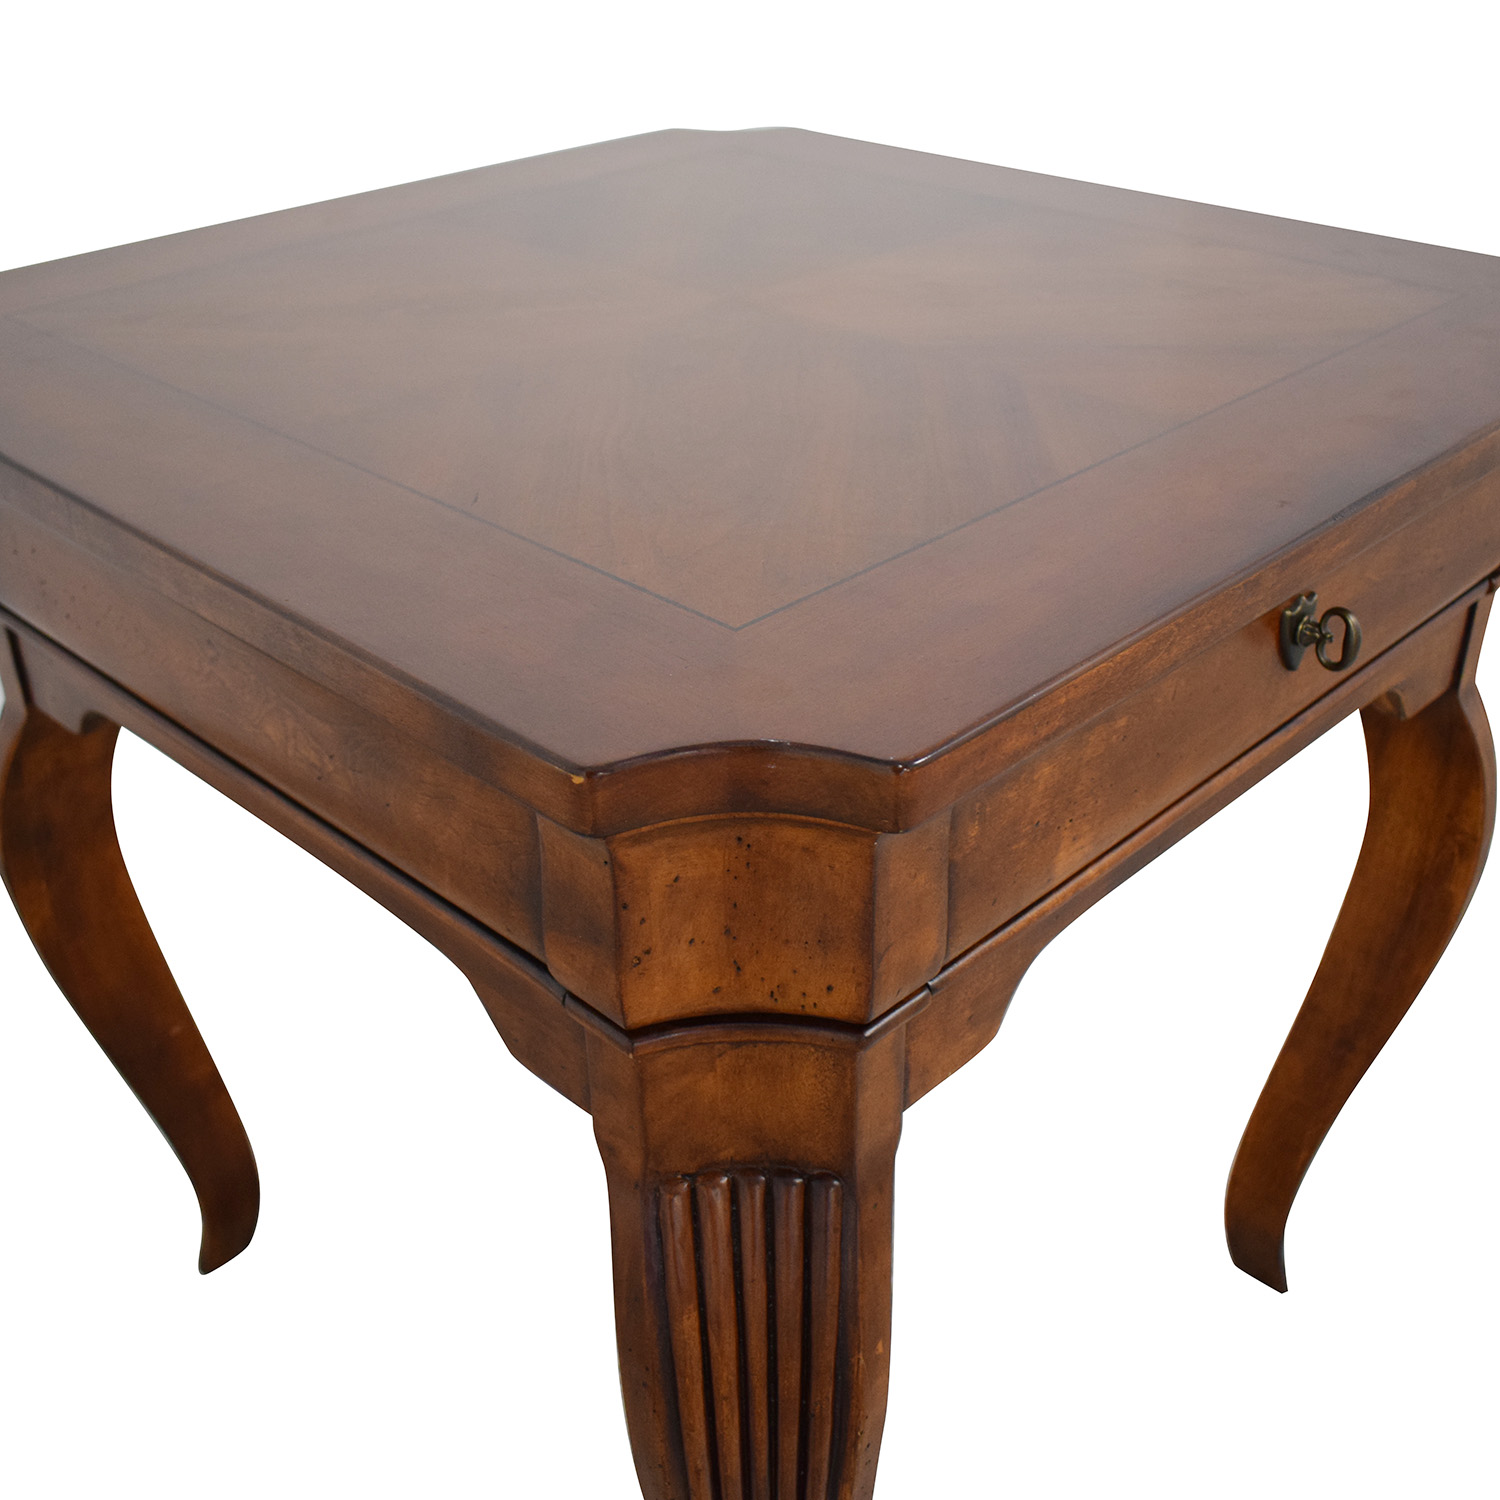 Stanley Furniture Stanley Furniture Square Lamp Table for sale